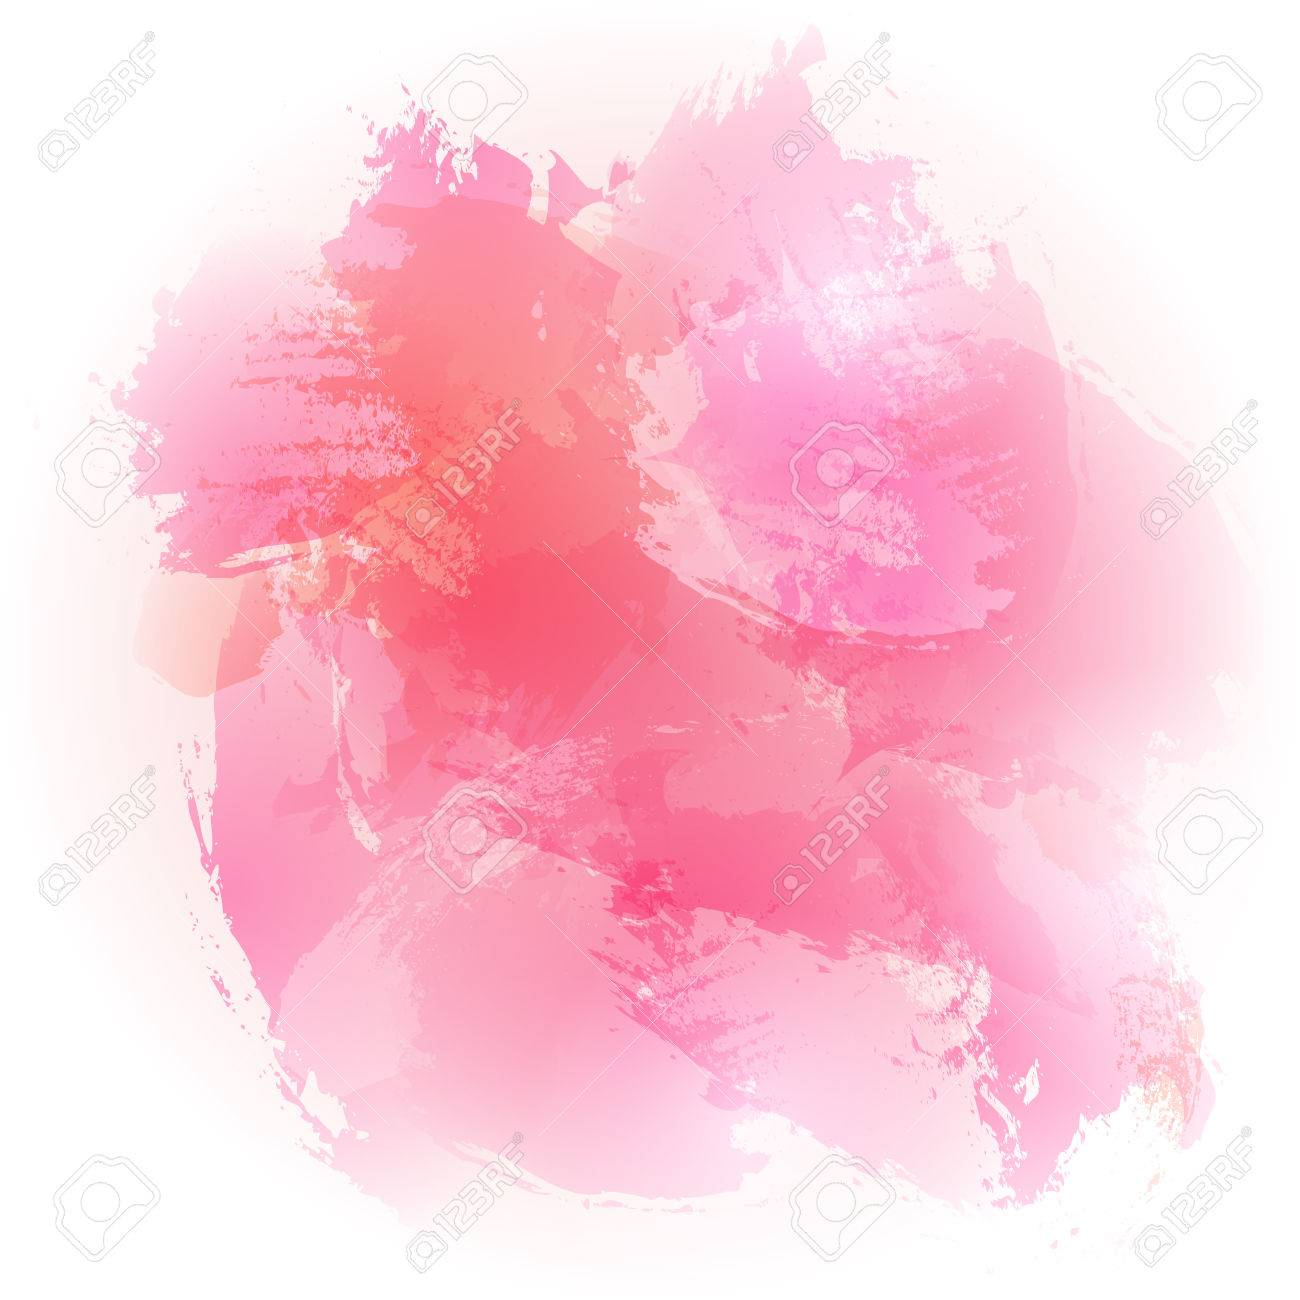 abstract watercolor pink brushed vector background design stock vector 48325021